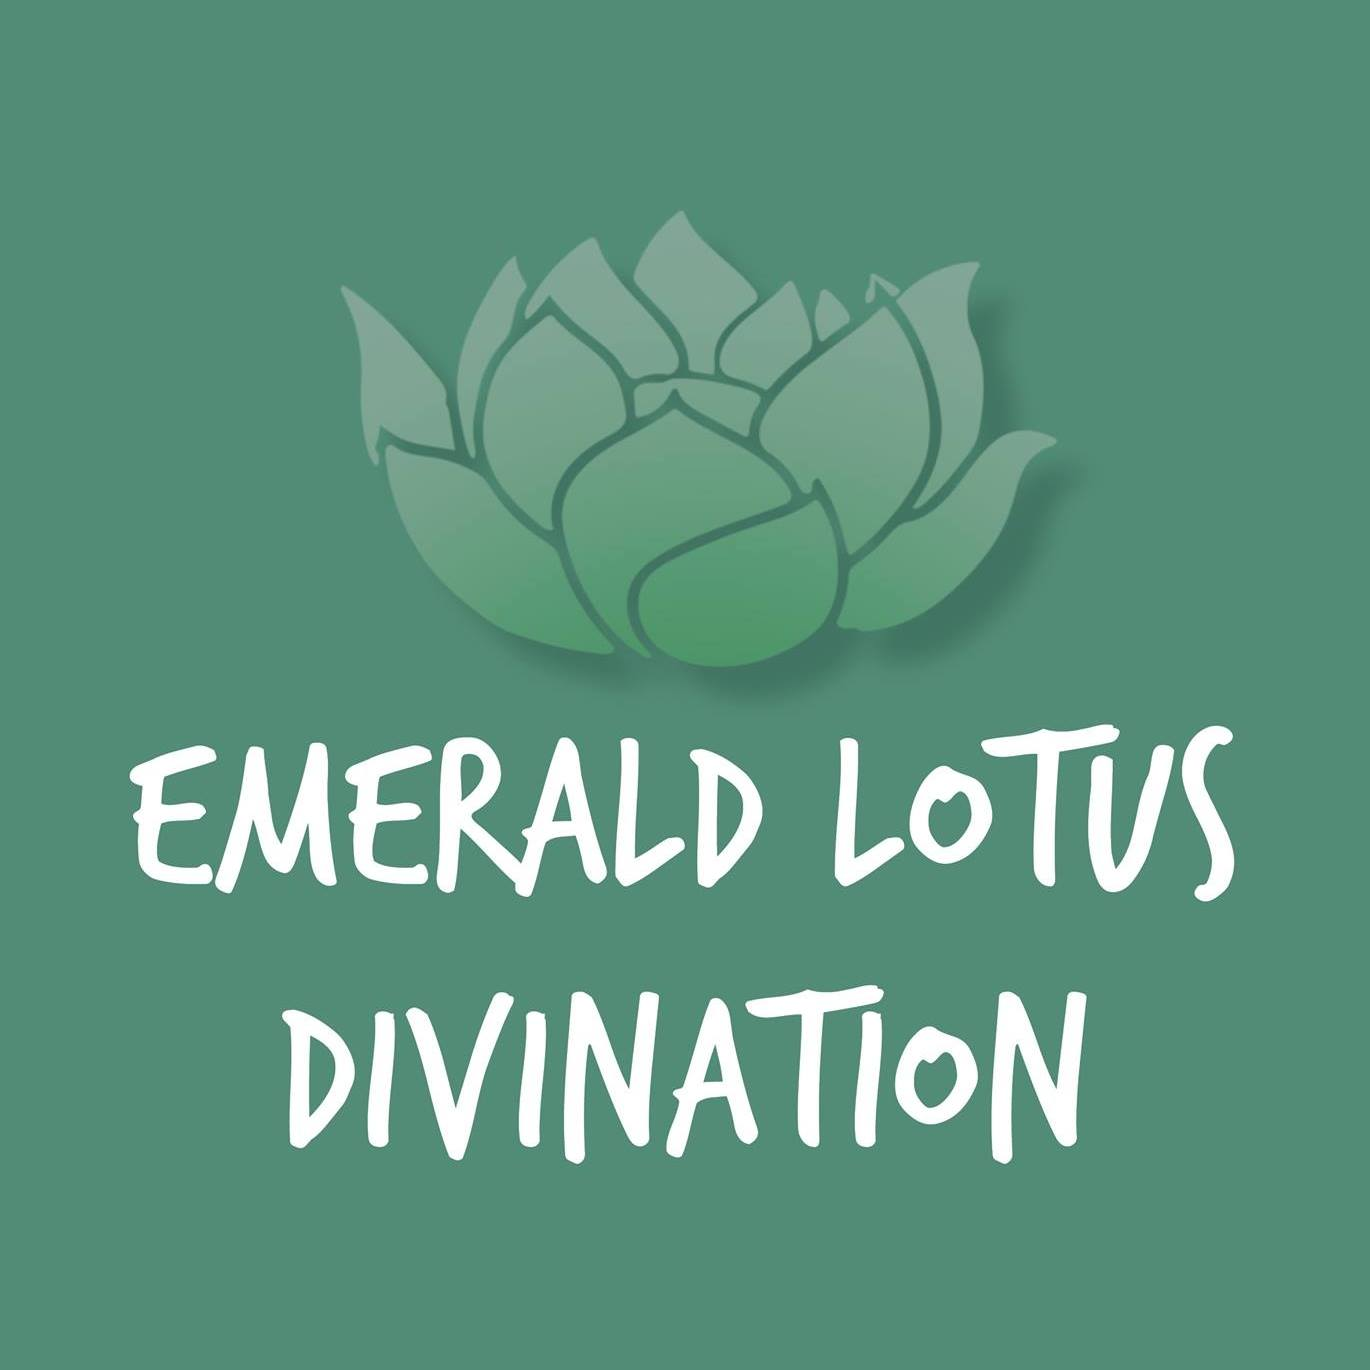 Emerald Lotus Divination